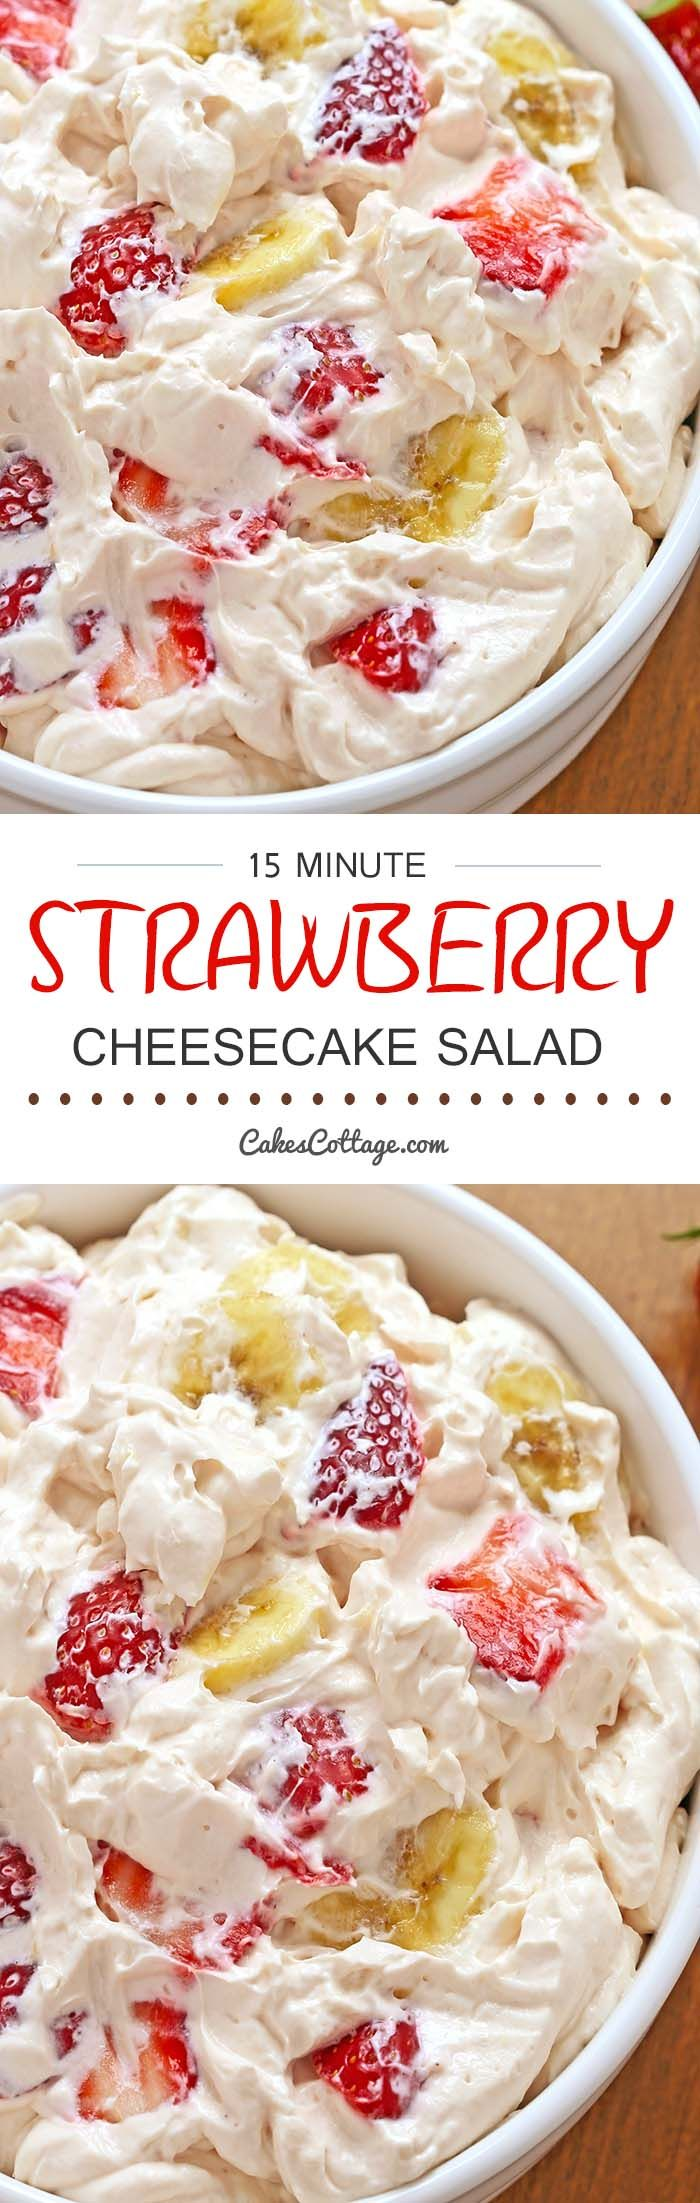 "Strawberry Cheesecake Salad - or what I like to call a ""potluck salad."" Rich…"